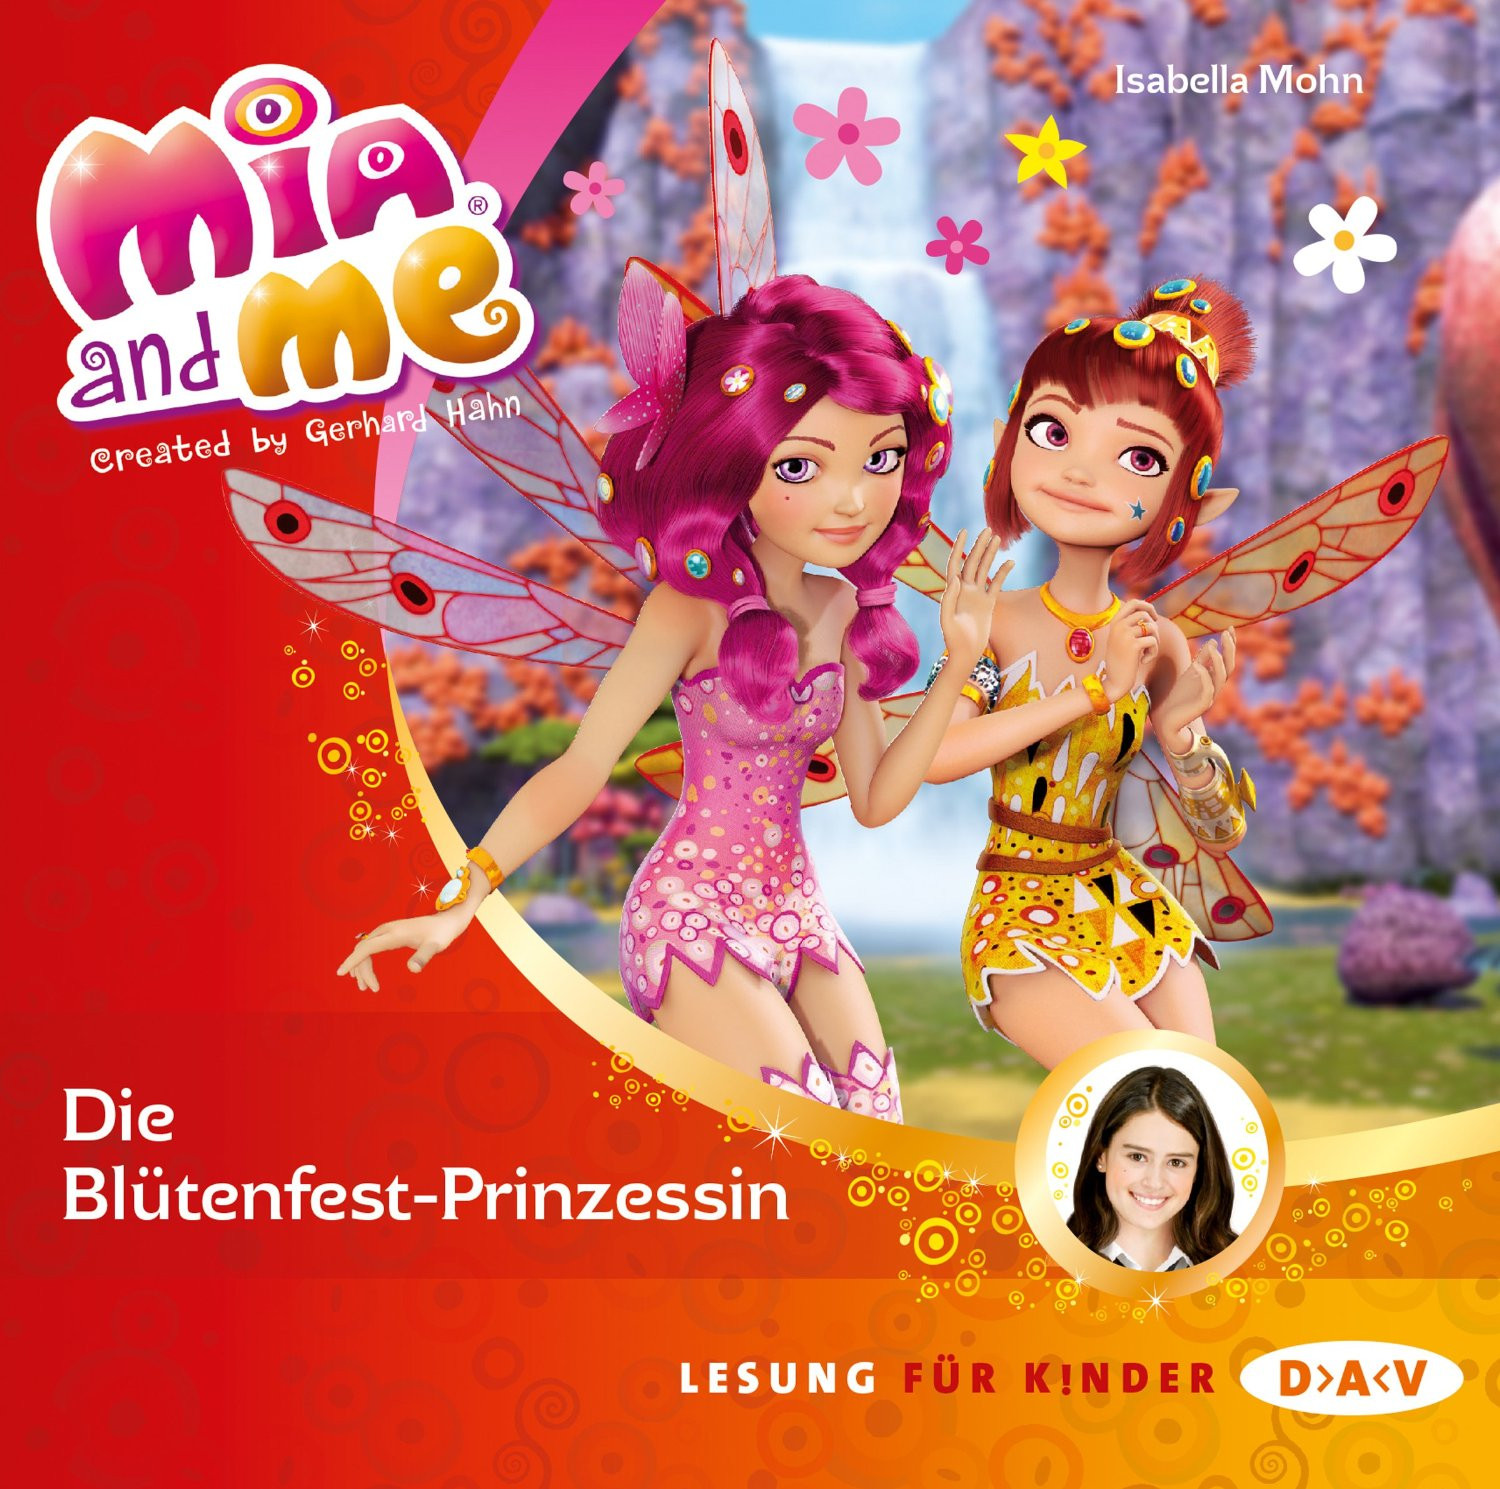 Mia and me - Band 9: Die Blütenfest-Prinzessin